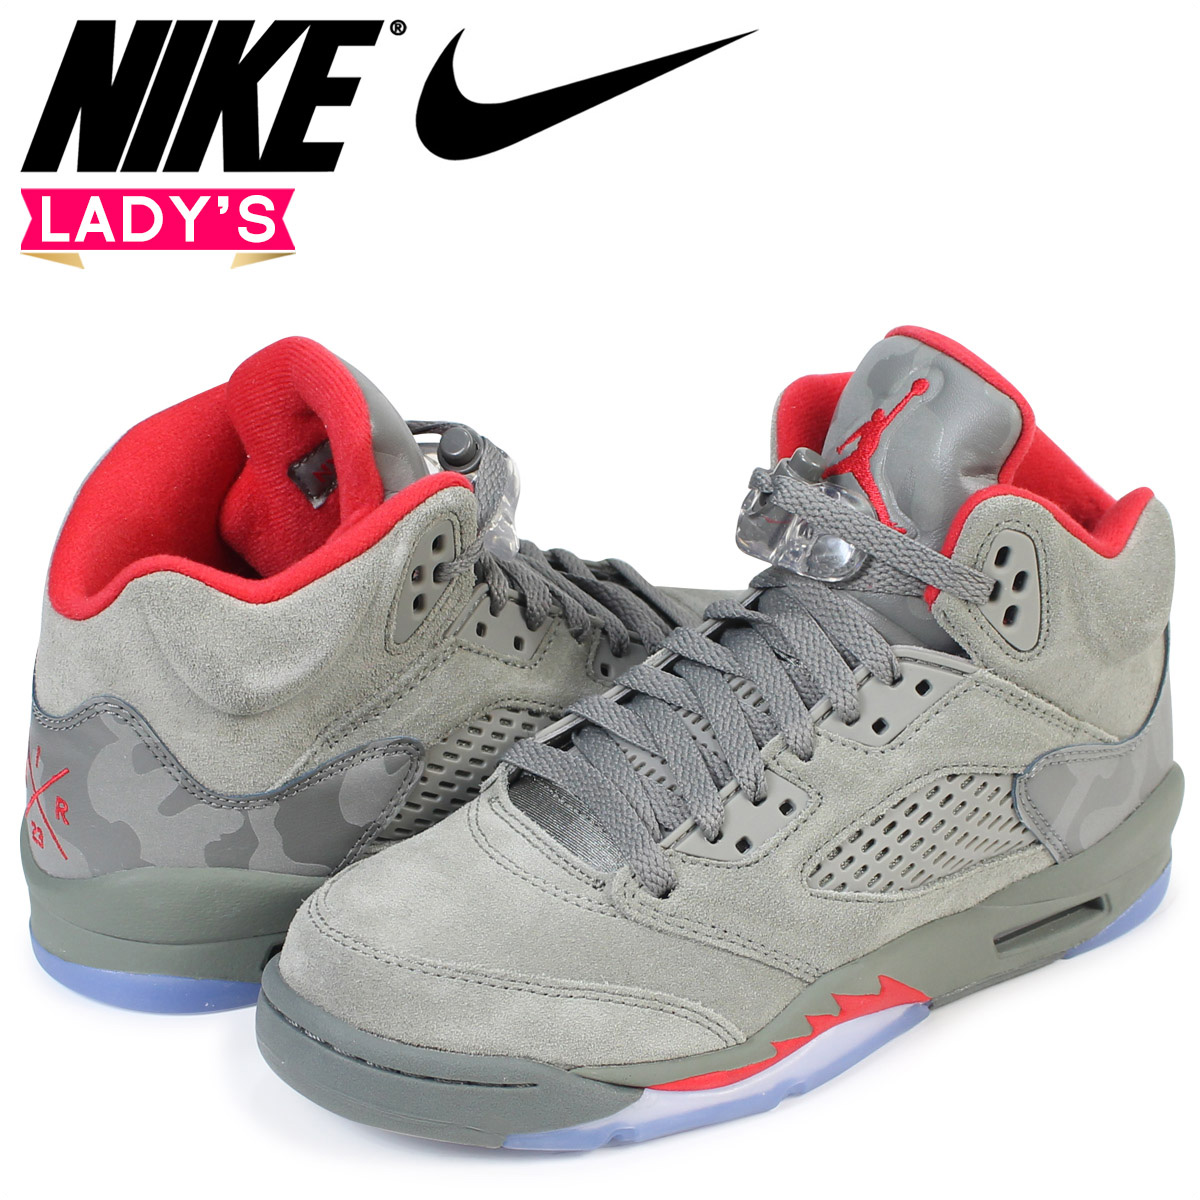 5676351e2faf Nike NIKE Air Jordan 5 nostalgic lady s sneakers AIR JORDAN 5 RETRO BG  440